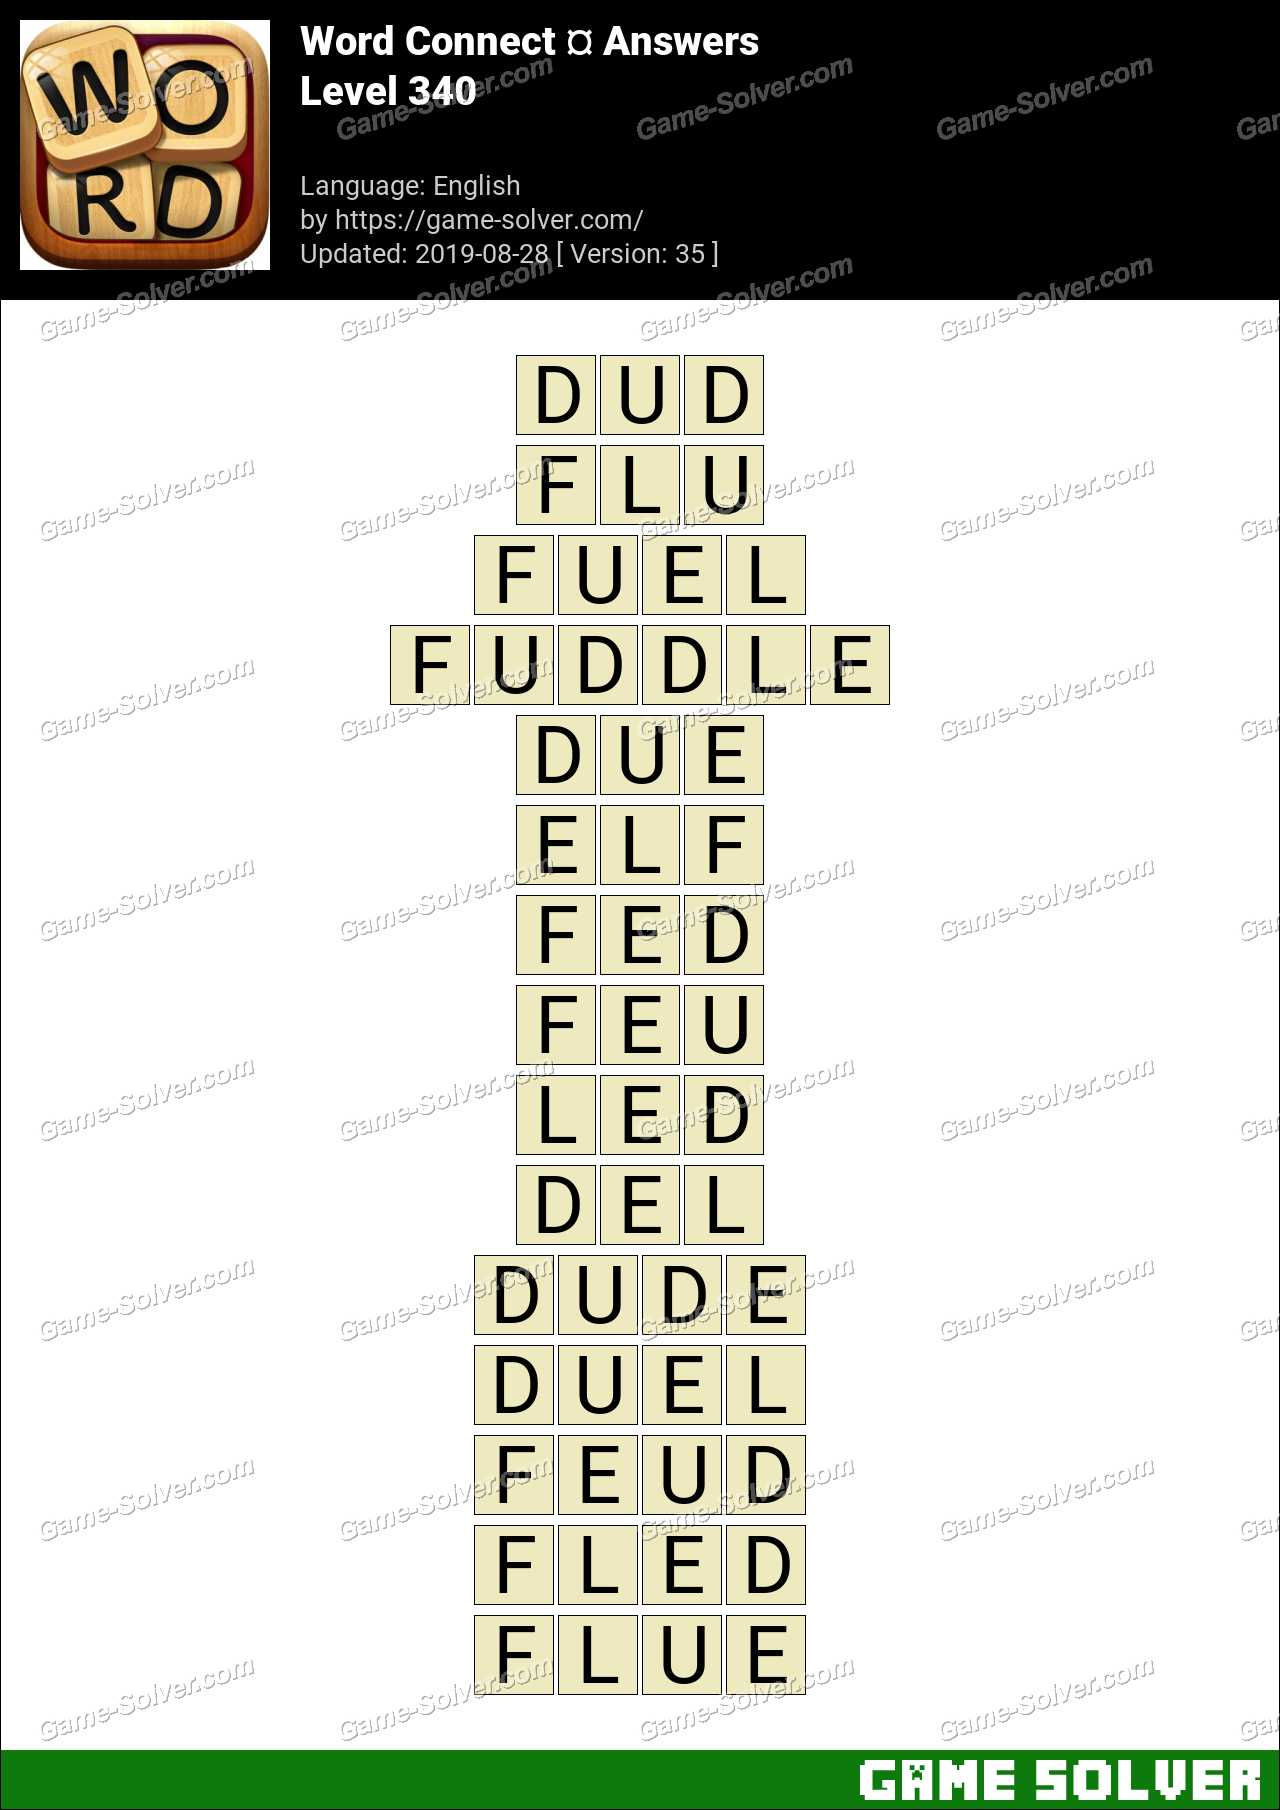 Word Connect Level 340 Answers